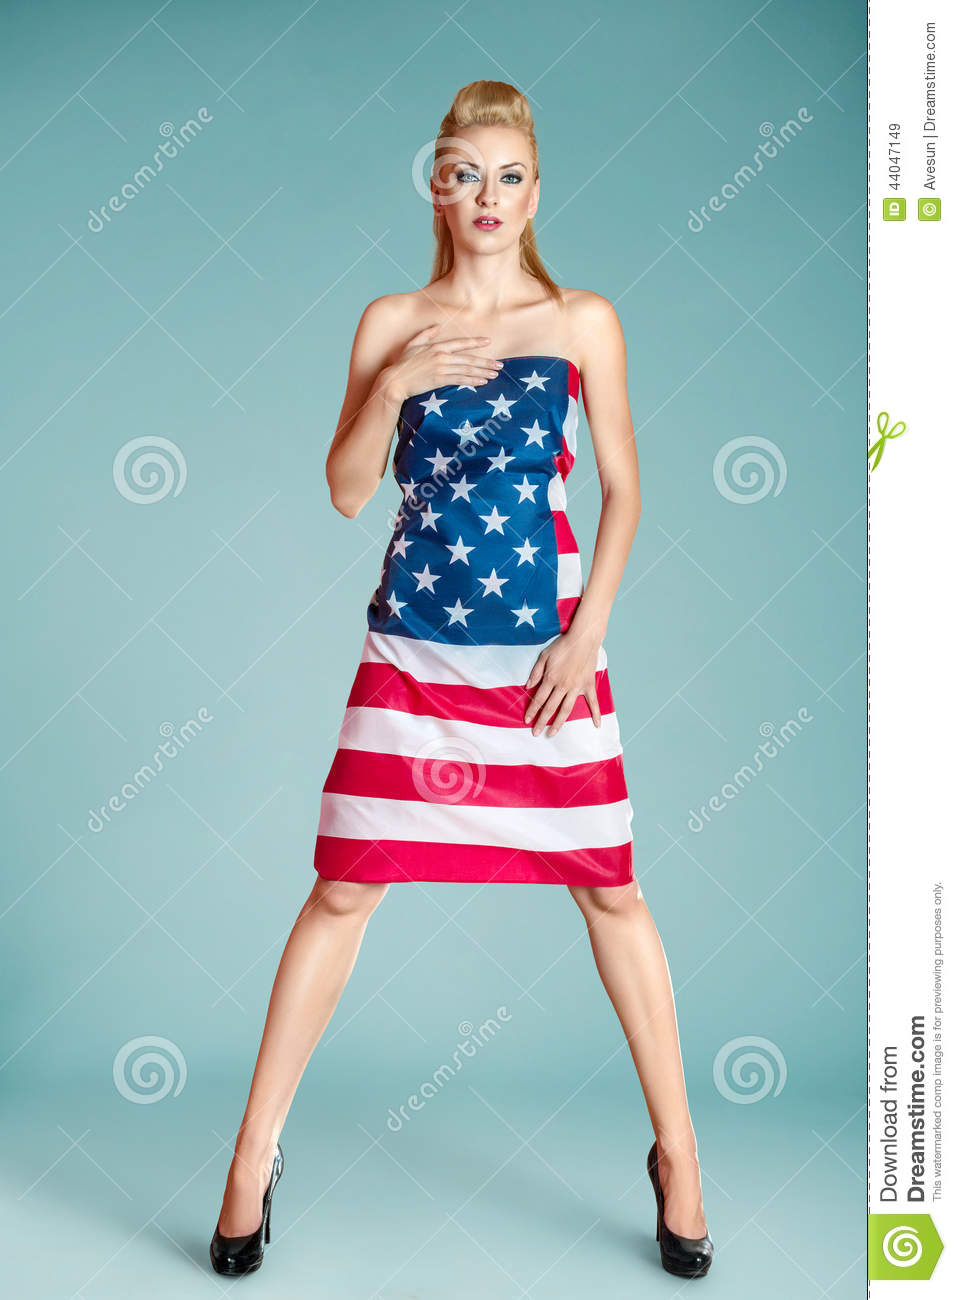 pinup girl with american flag stock image image of beauty american 44047149. Black Bedroom Furniture Sets. Home Design Ideas